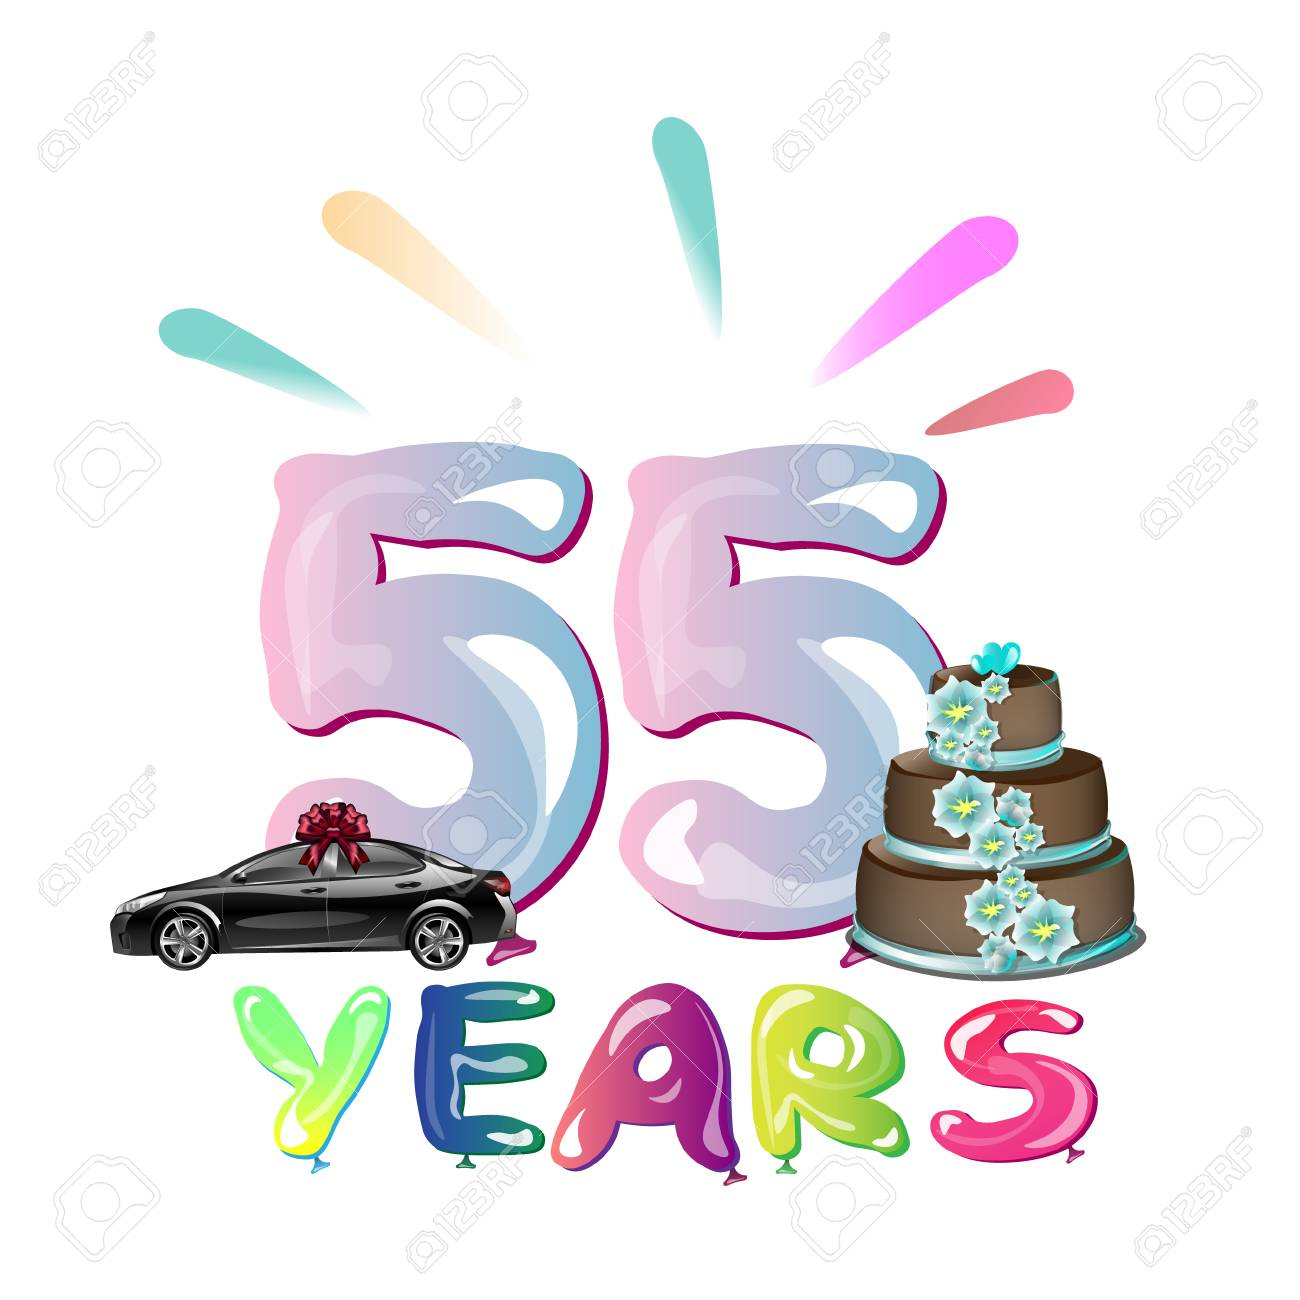 Happy Birthday Fifty Five 55 Year Royalty Free Cliparts, Vectors ... 95f292fa3c